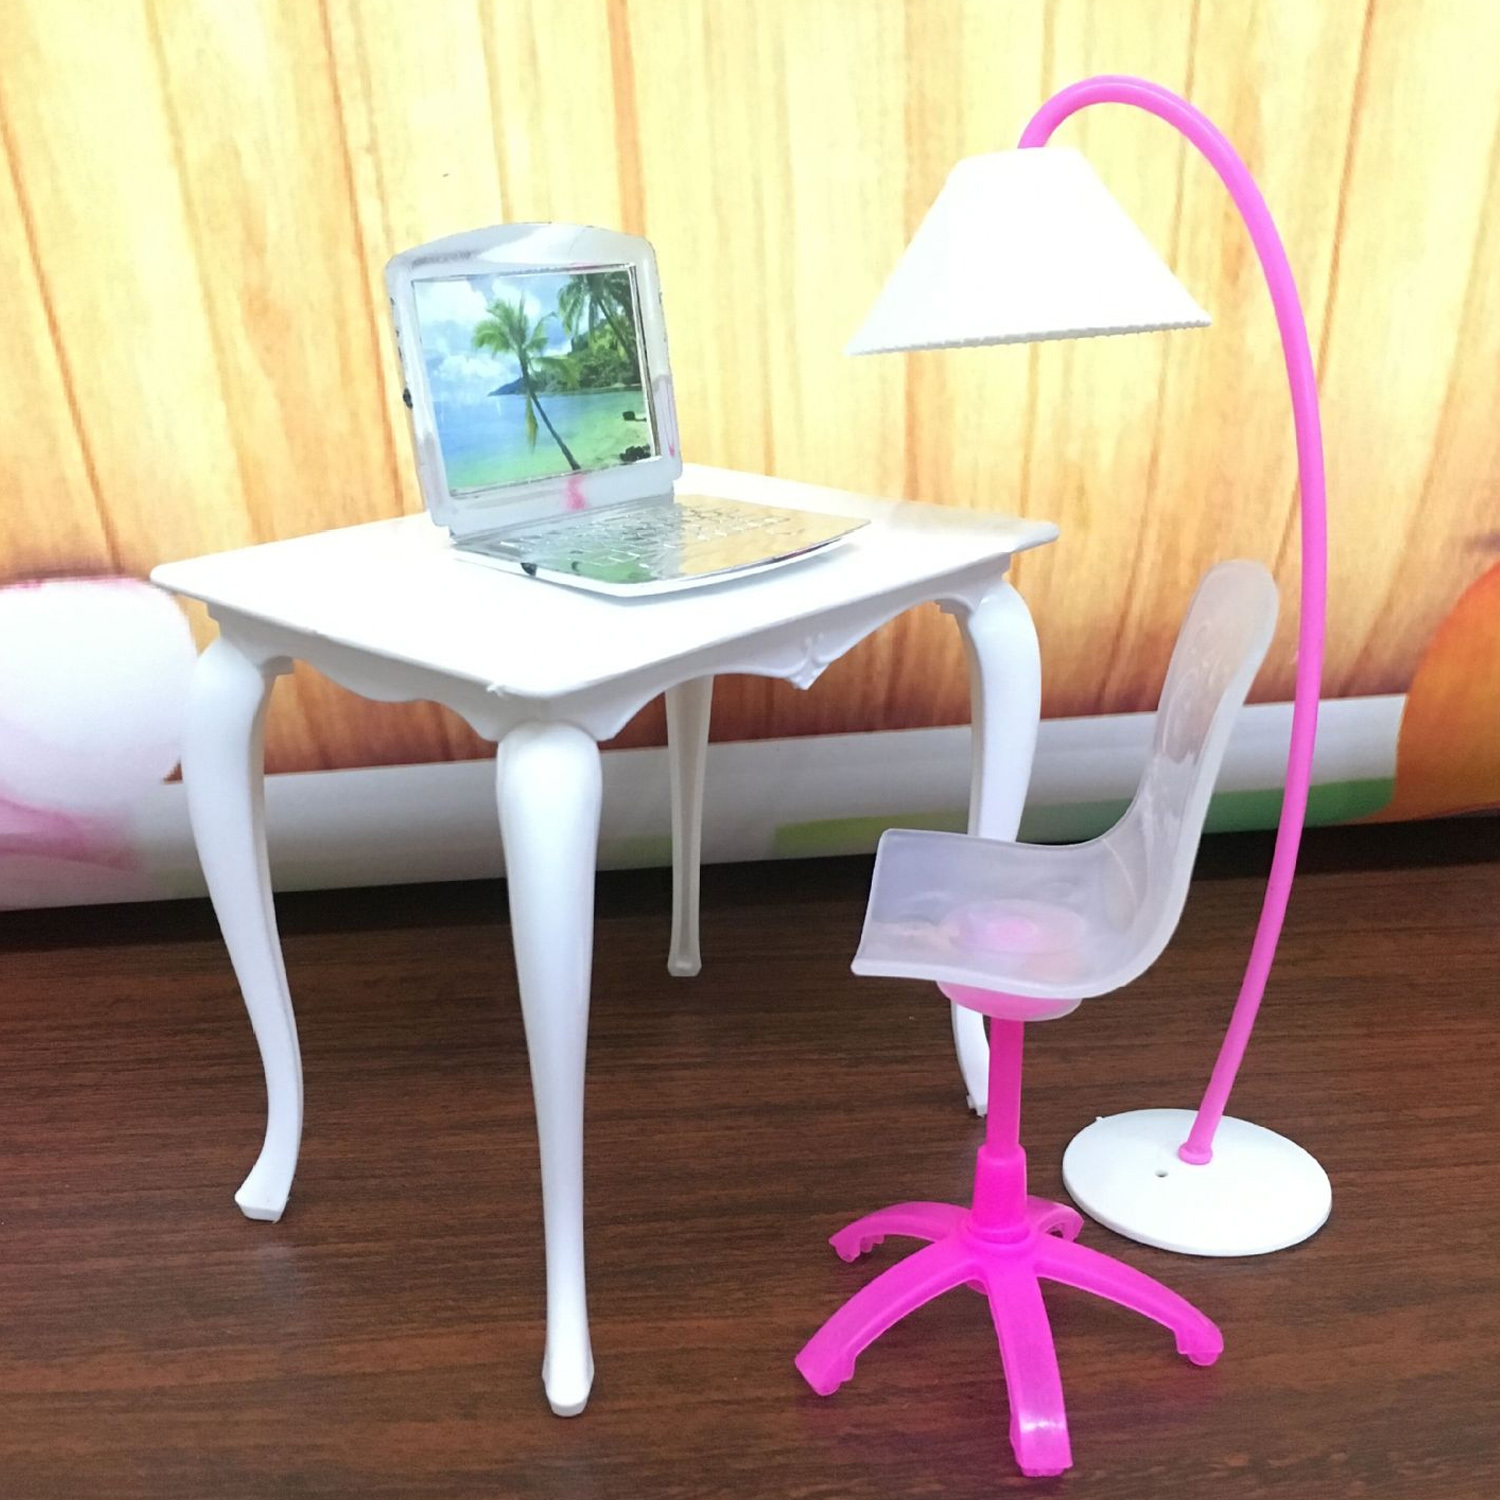 4PCS Simulation Office Table Lamp Laptop Chair Doll House Furniture For Barbie Doll Furniture Accessories Kids Christmas Gift